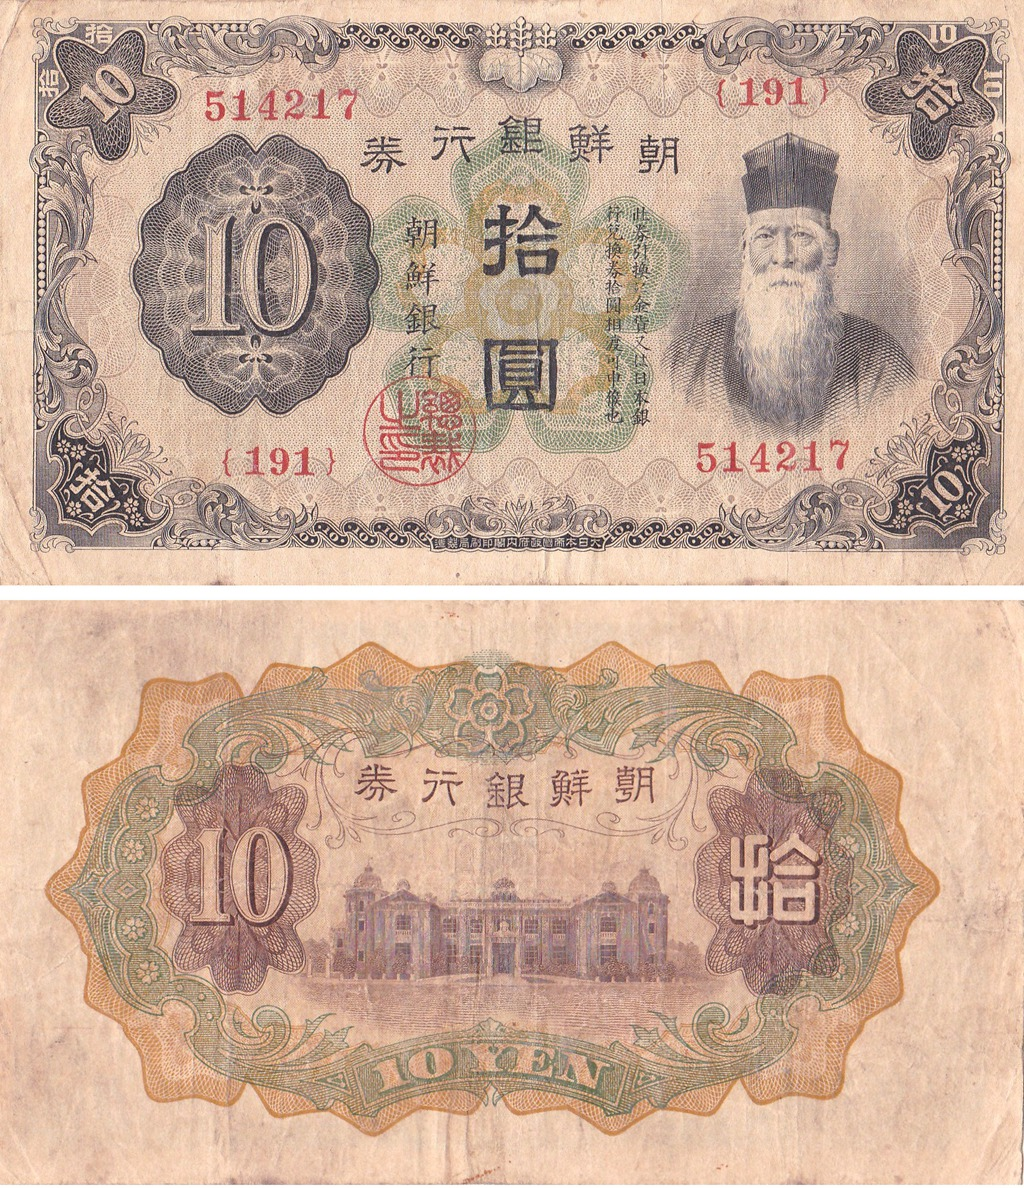 L1015, Bank of Korea (Chosen), 10 Won (Yen), 1932 Issue P-31